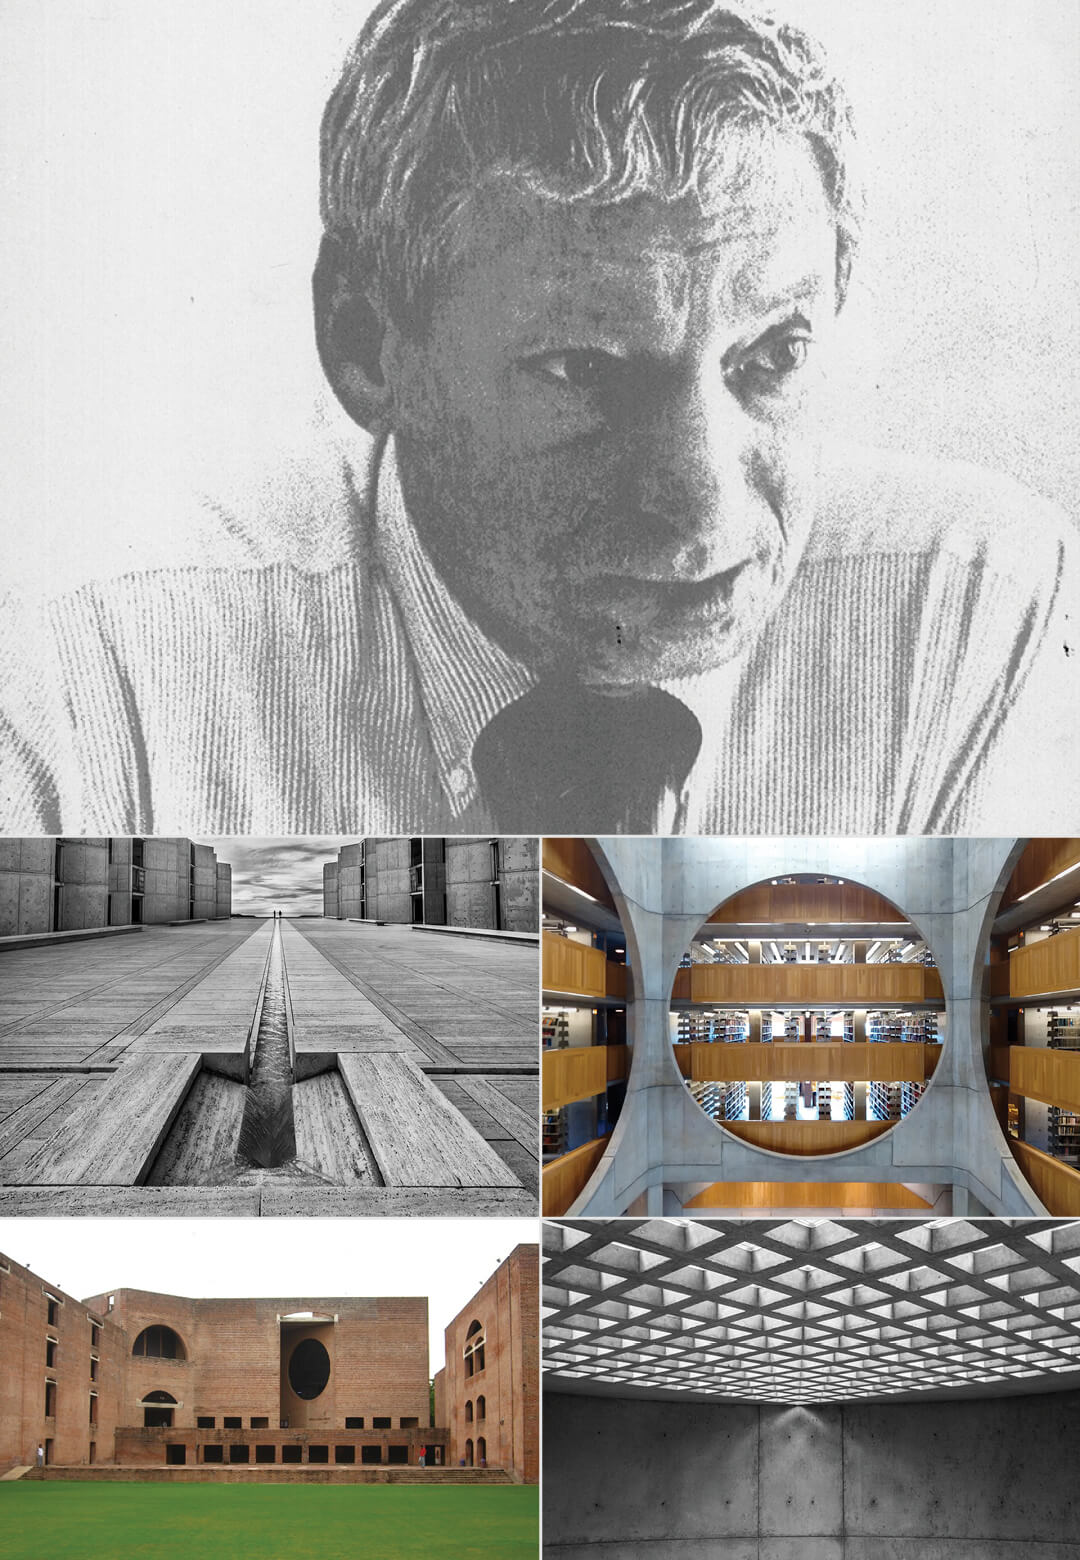 Louis Isadore Kahn (February 20, 1901 – March 17, 1974), a champion of modernist architecture globally   Louis Kahn Tribute, The Notebooks and Drawings of Louis I. Kahn   Louis Kahn, Designers and Books  STIRworld